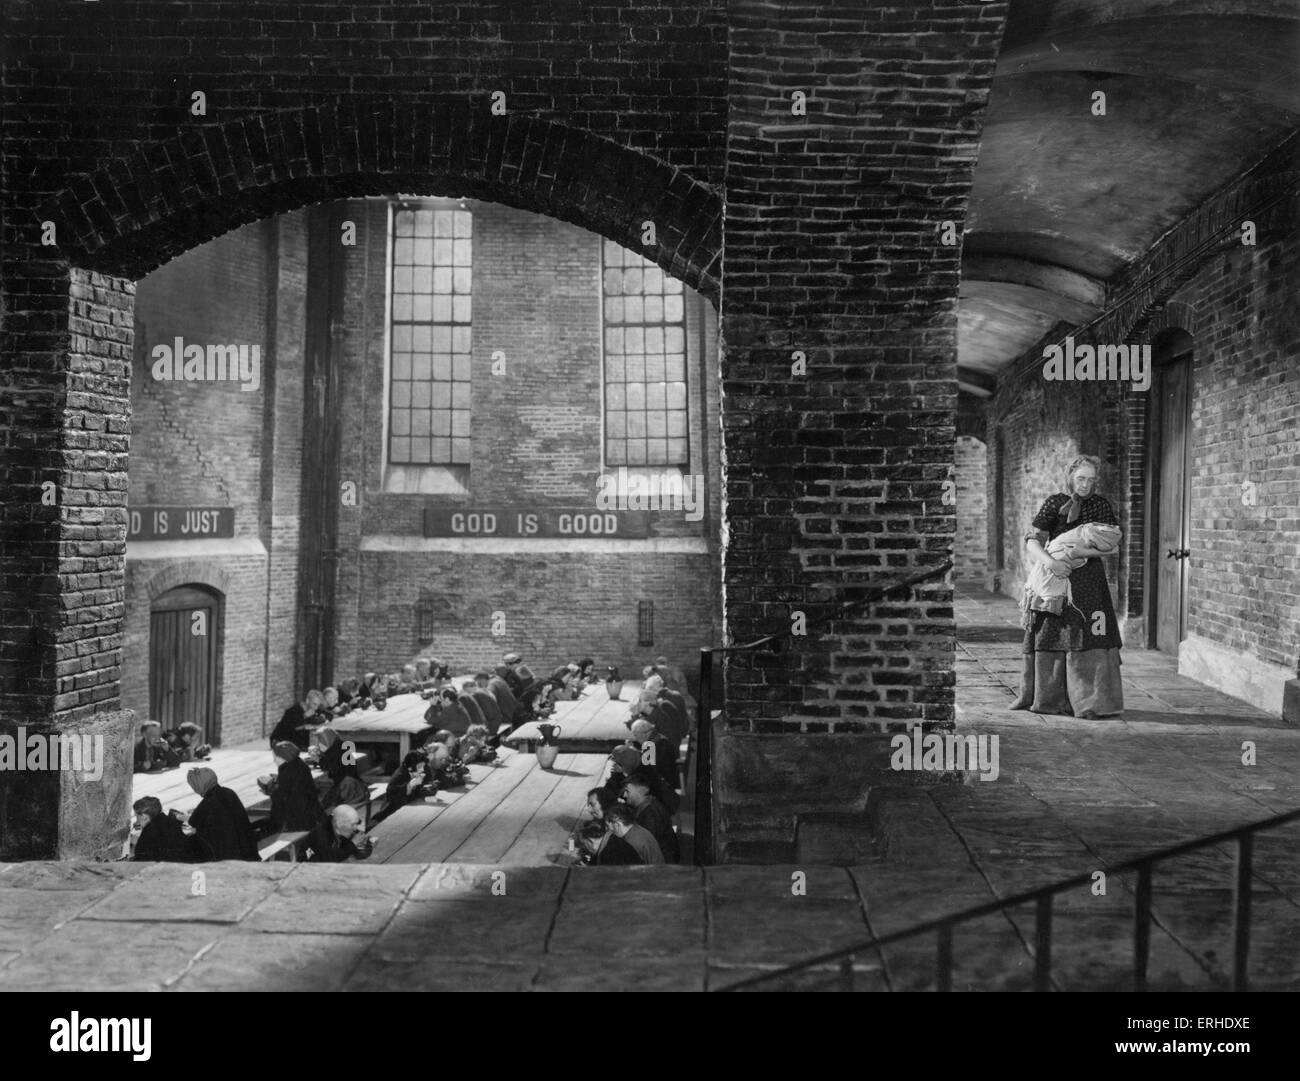 Oliver Twist film still from 1948 Rank Film production of Charles Dickens' book. British novelist, 7 February - Stock Image